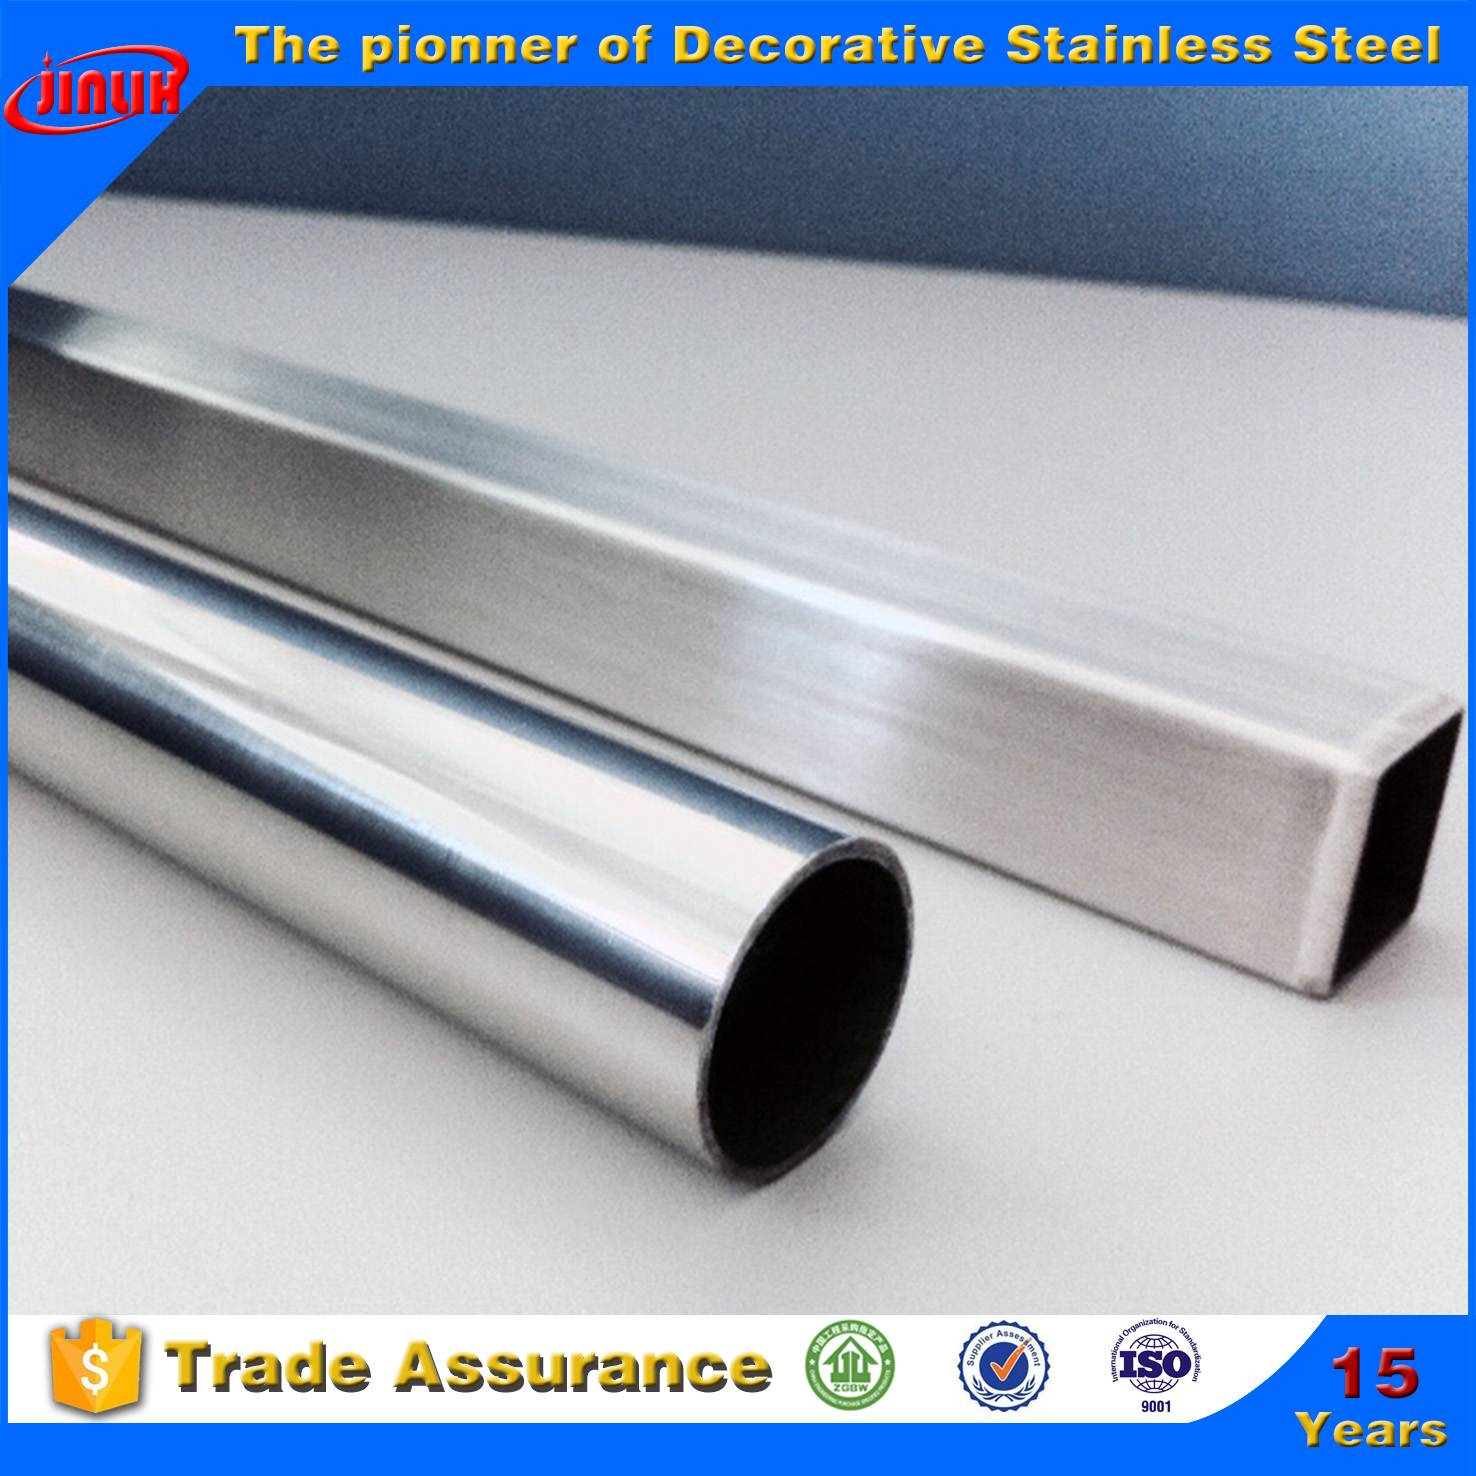 JIS,AISI,ASTM,GB,DIN,EN,ISO Standard Stainless steel welded tube